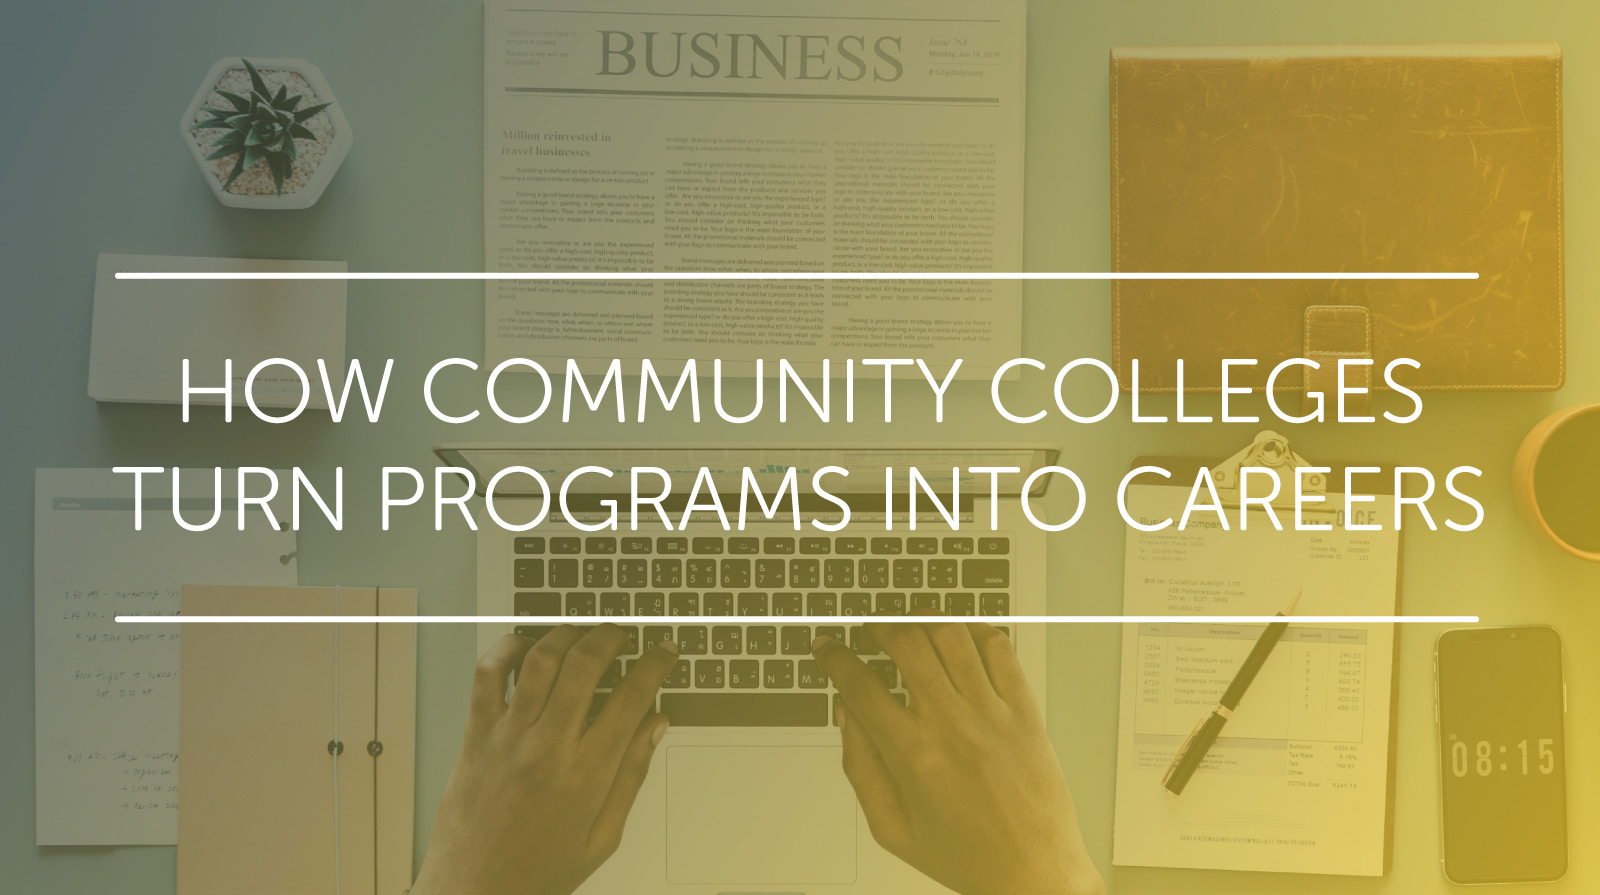 programs into careers